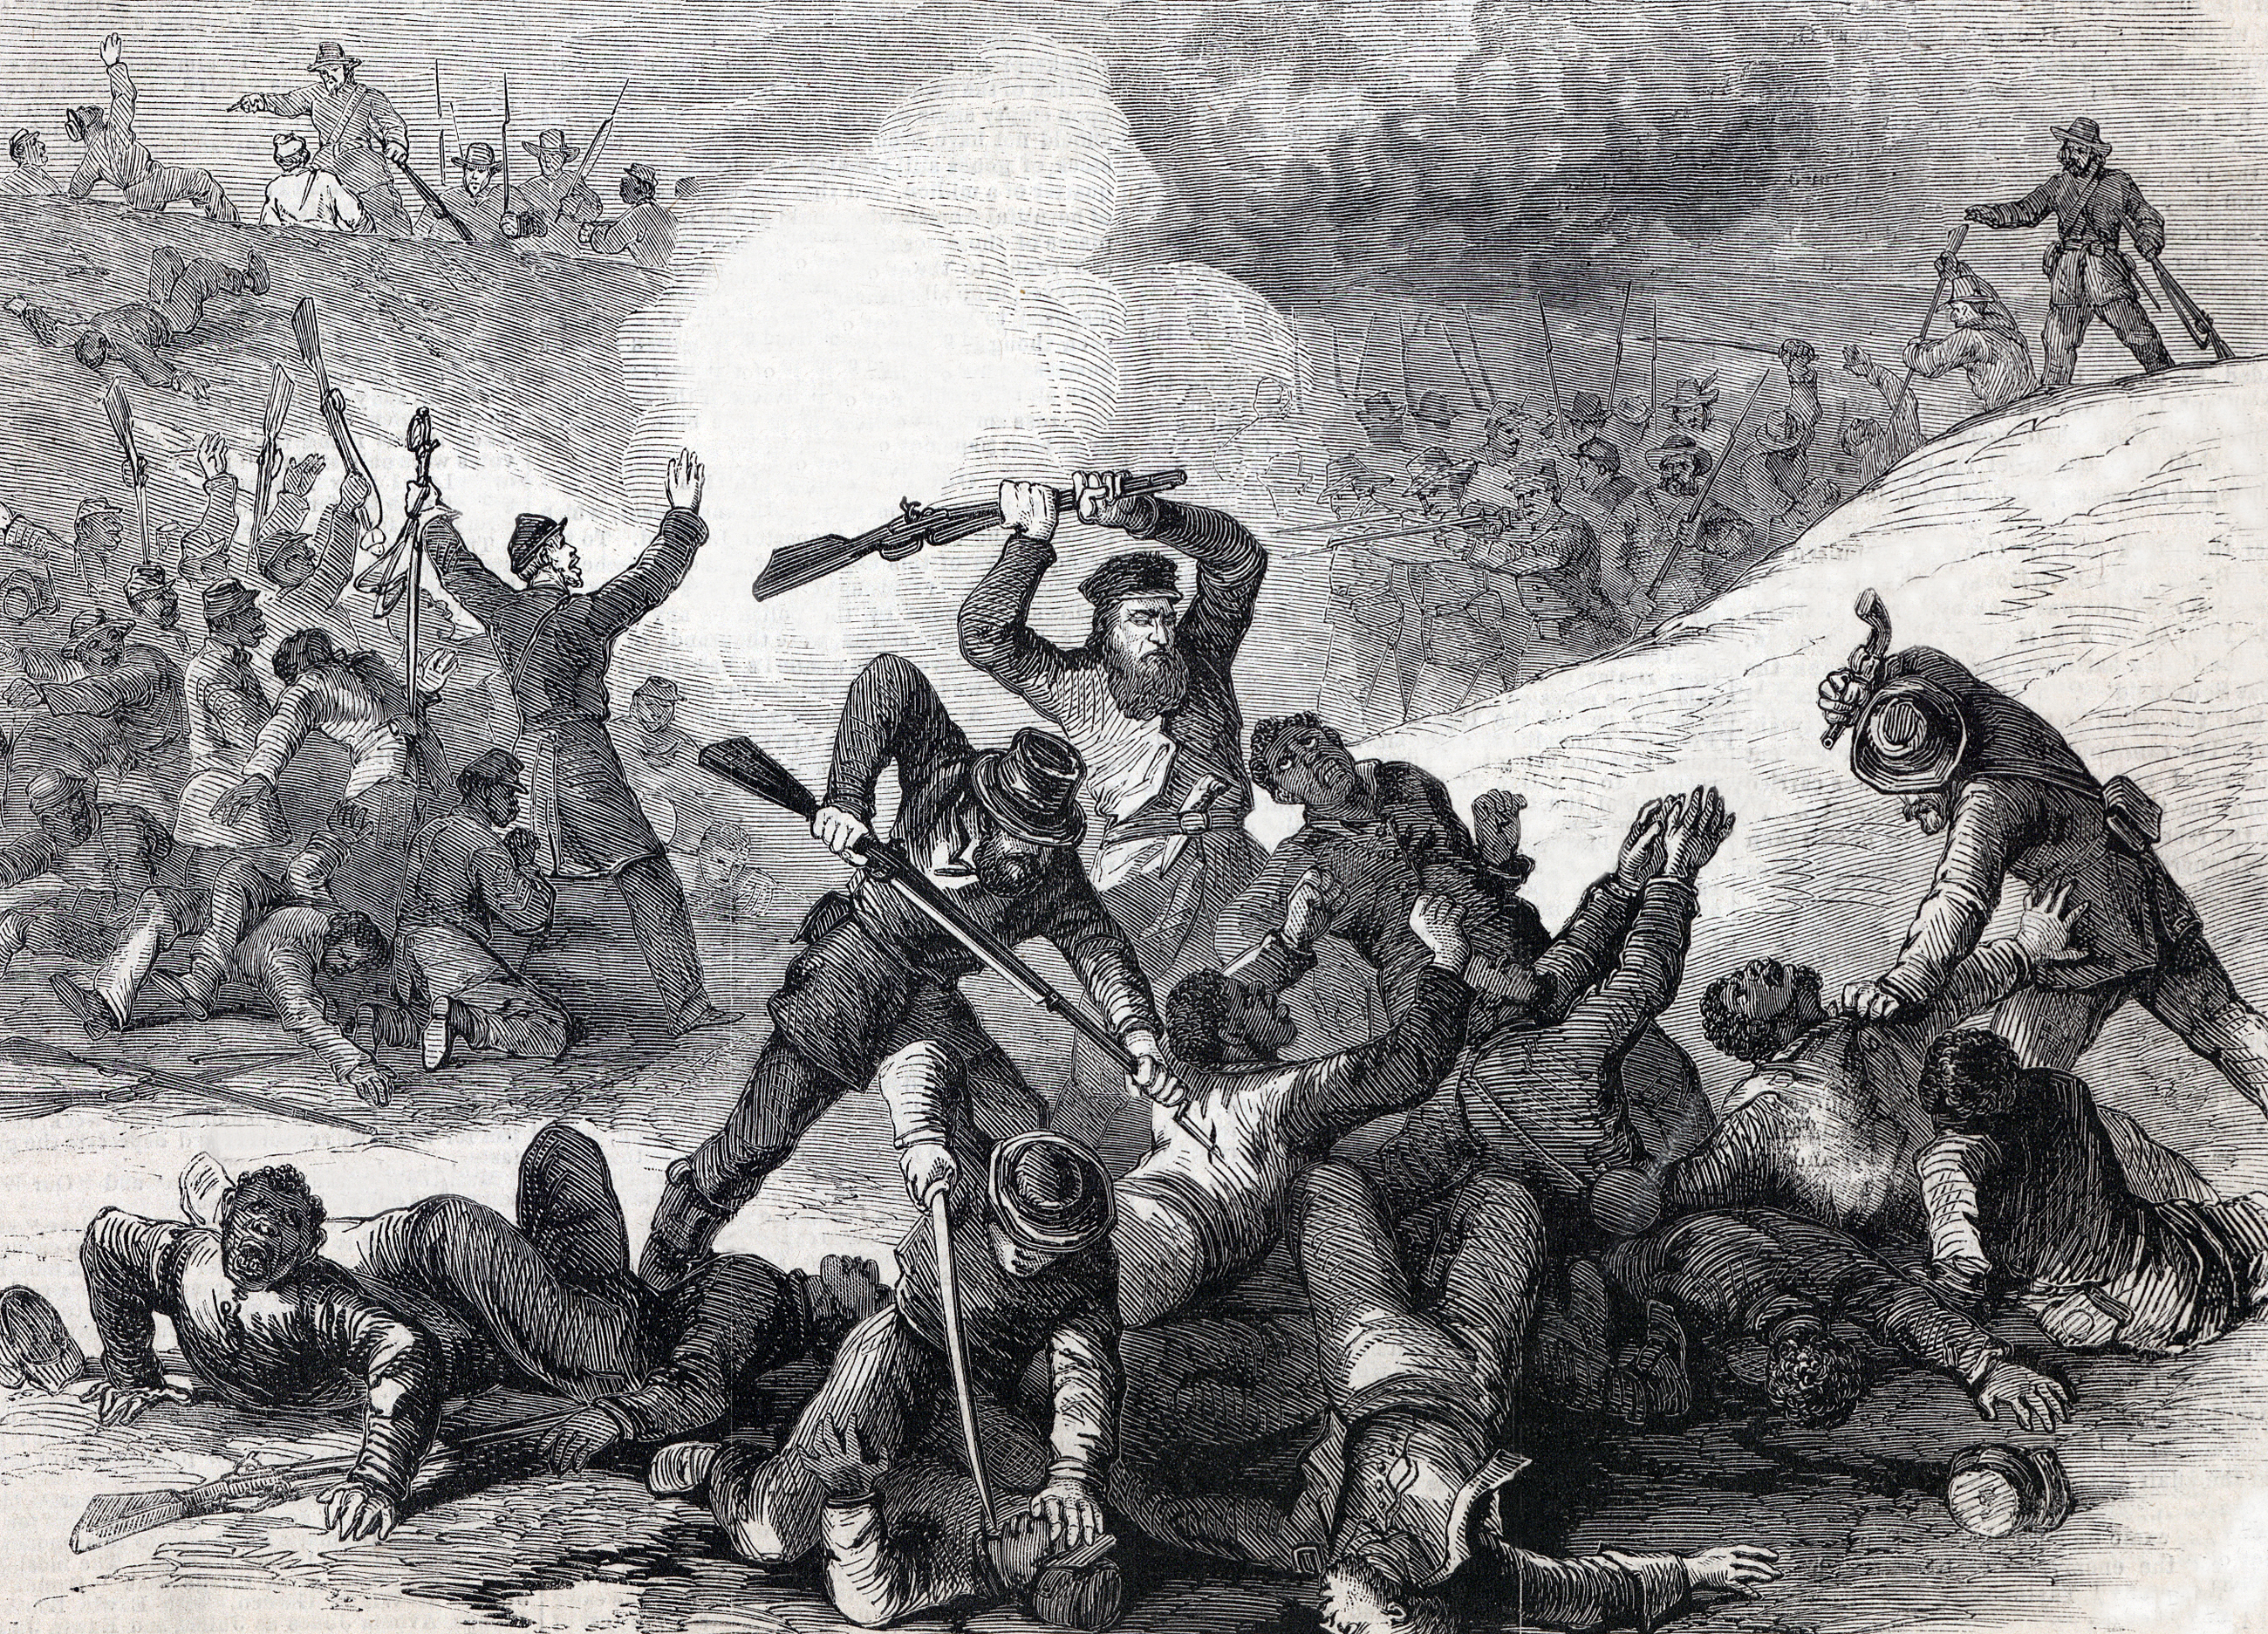 Battle and massacre at Fort Pillow